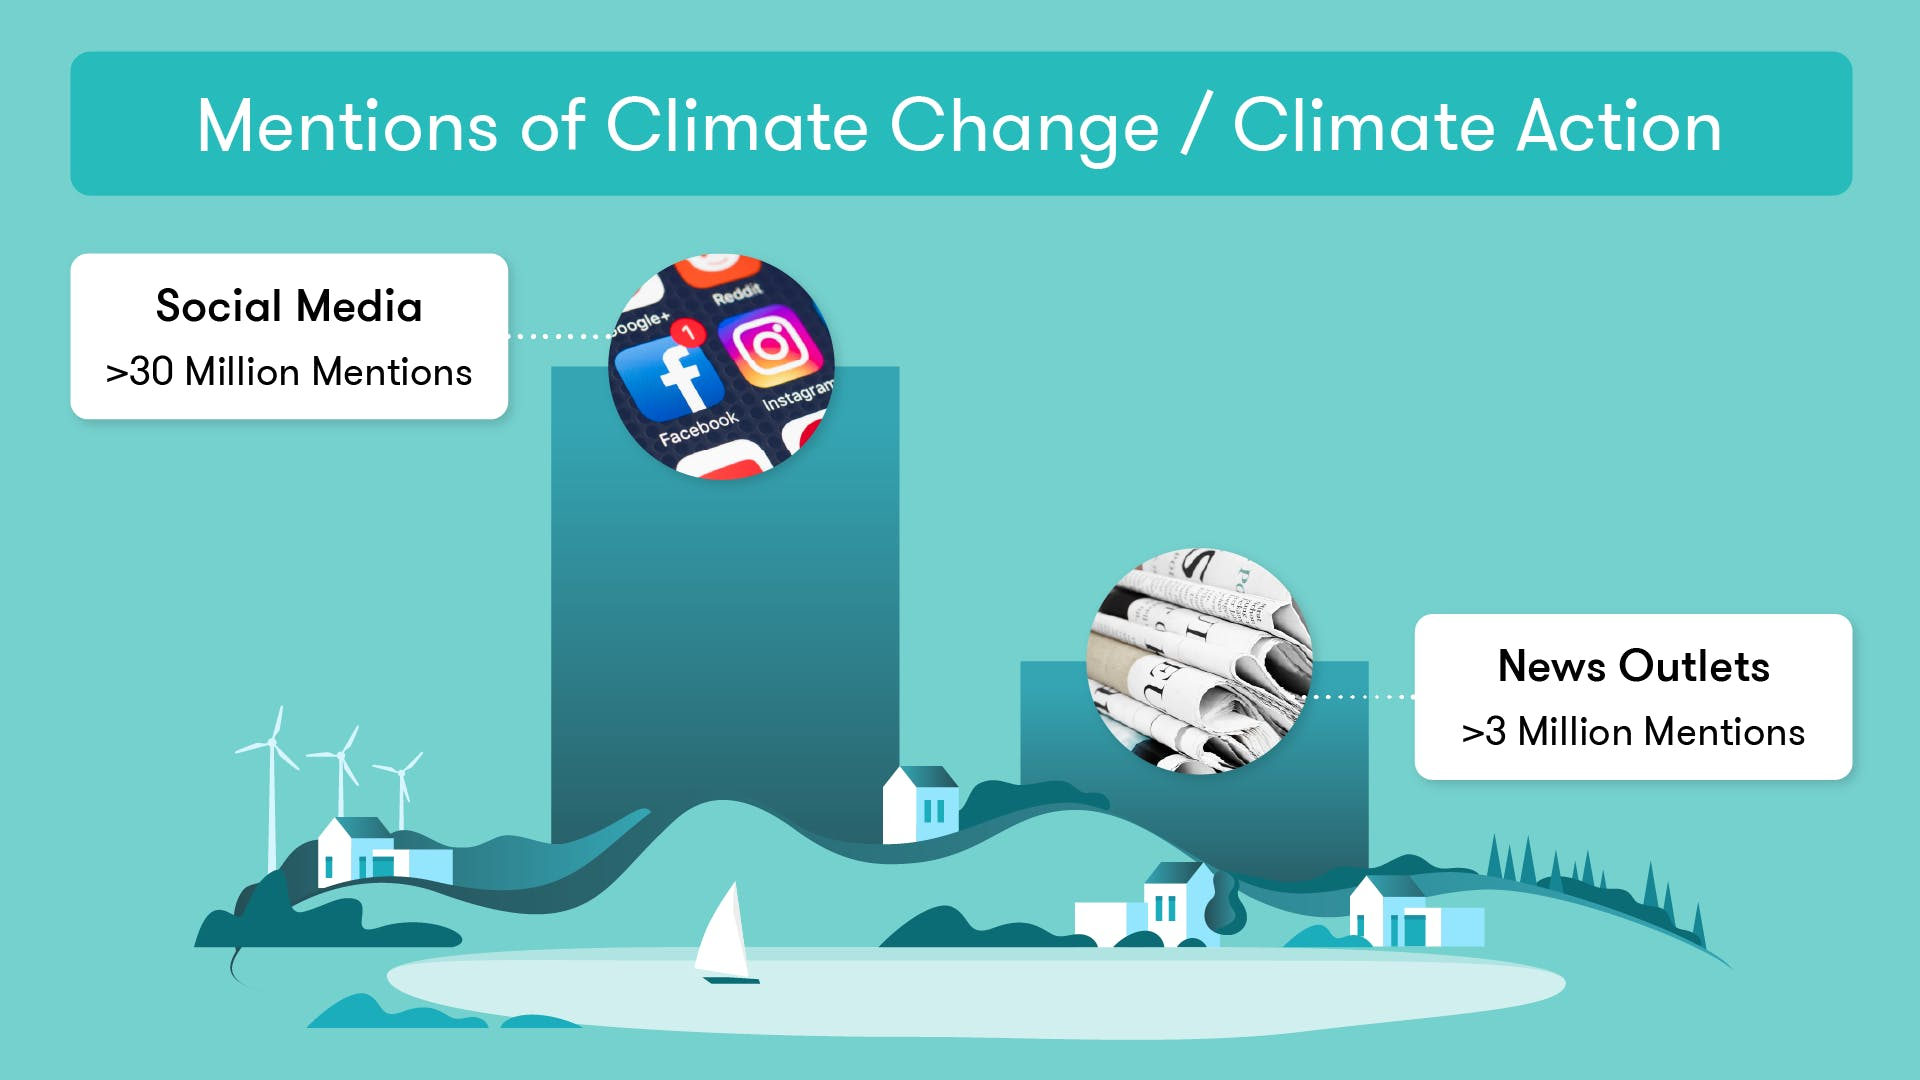 Climate action mentions on social media and news this year